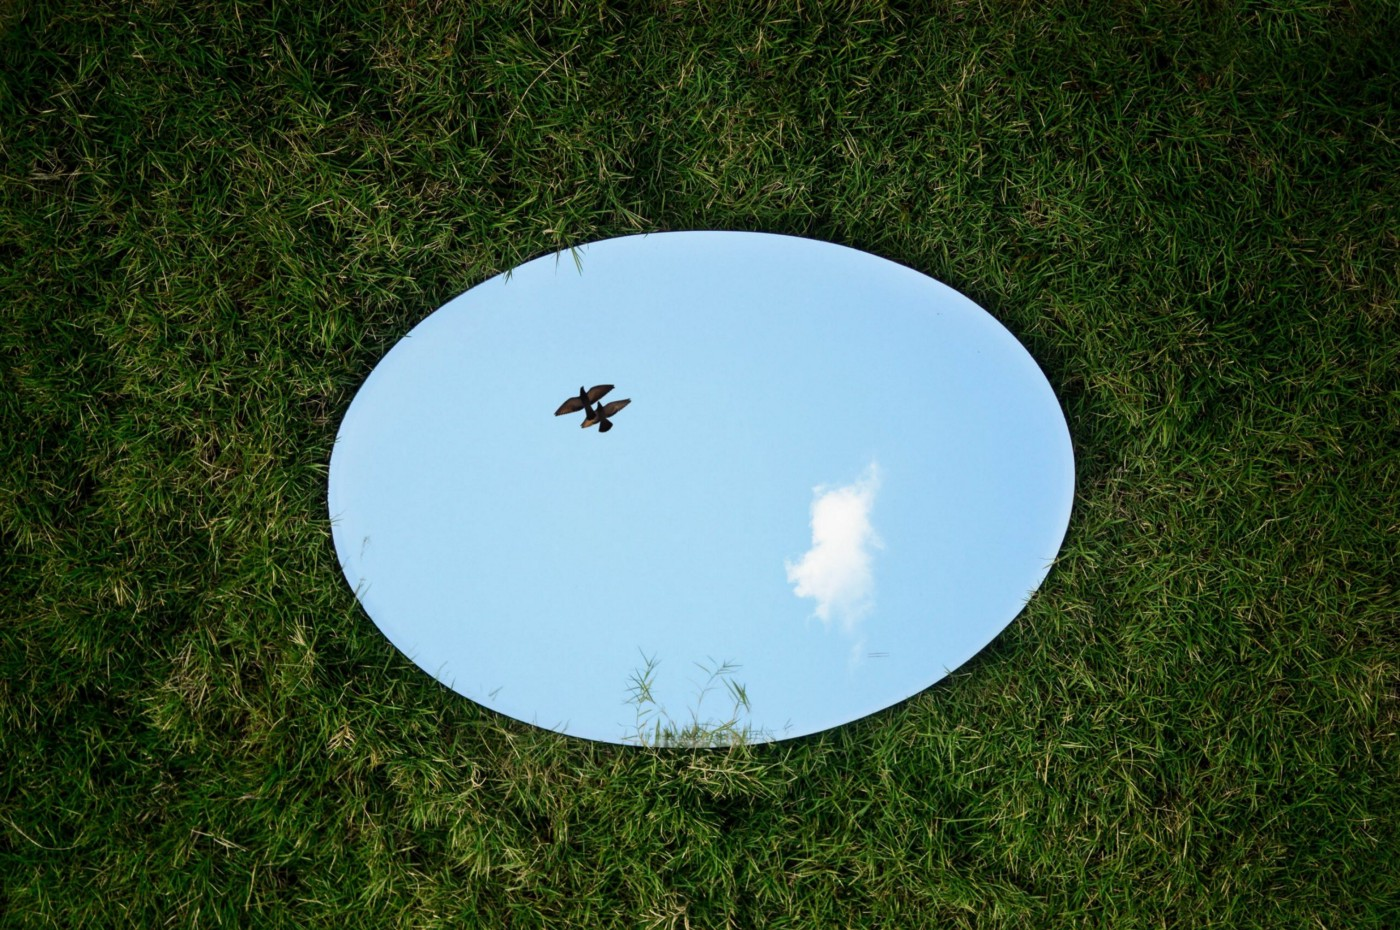 Mirror in the grass, reflecting blue sky and a pair of birds flying by